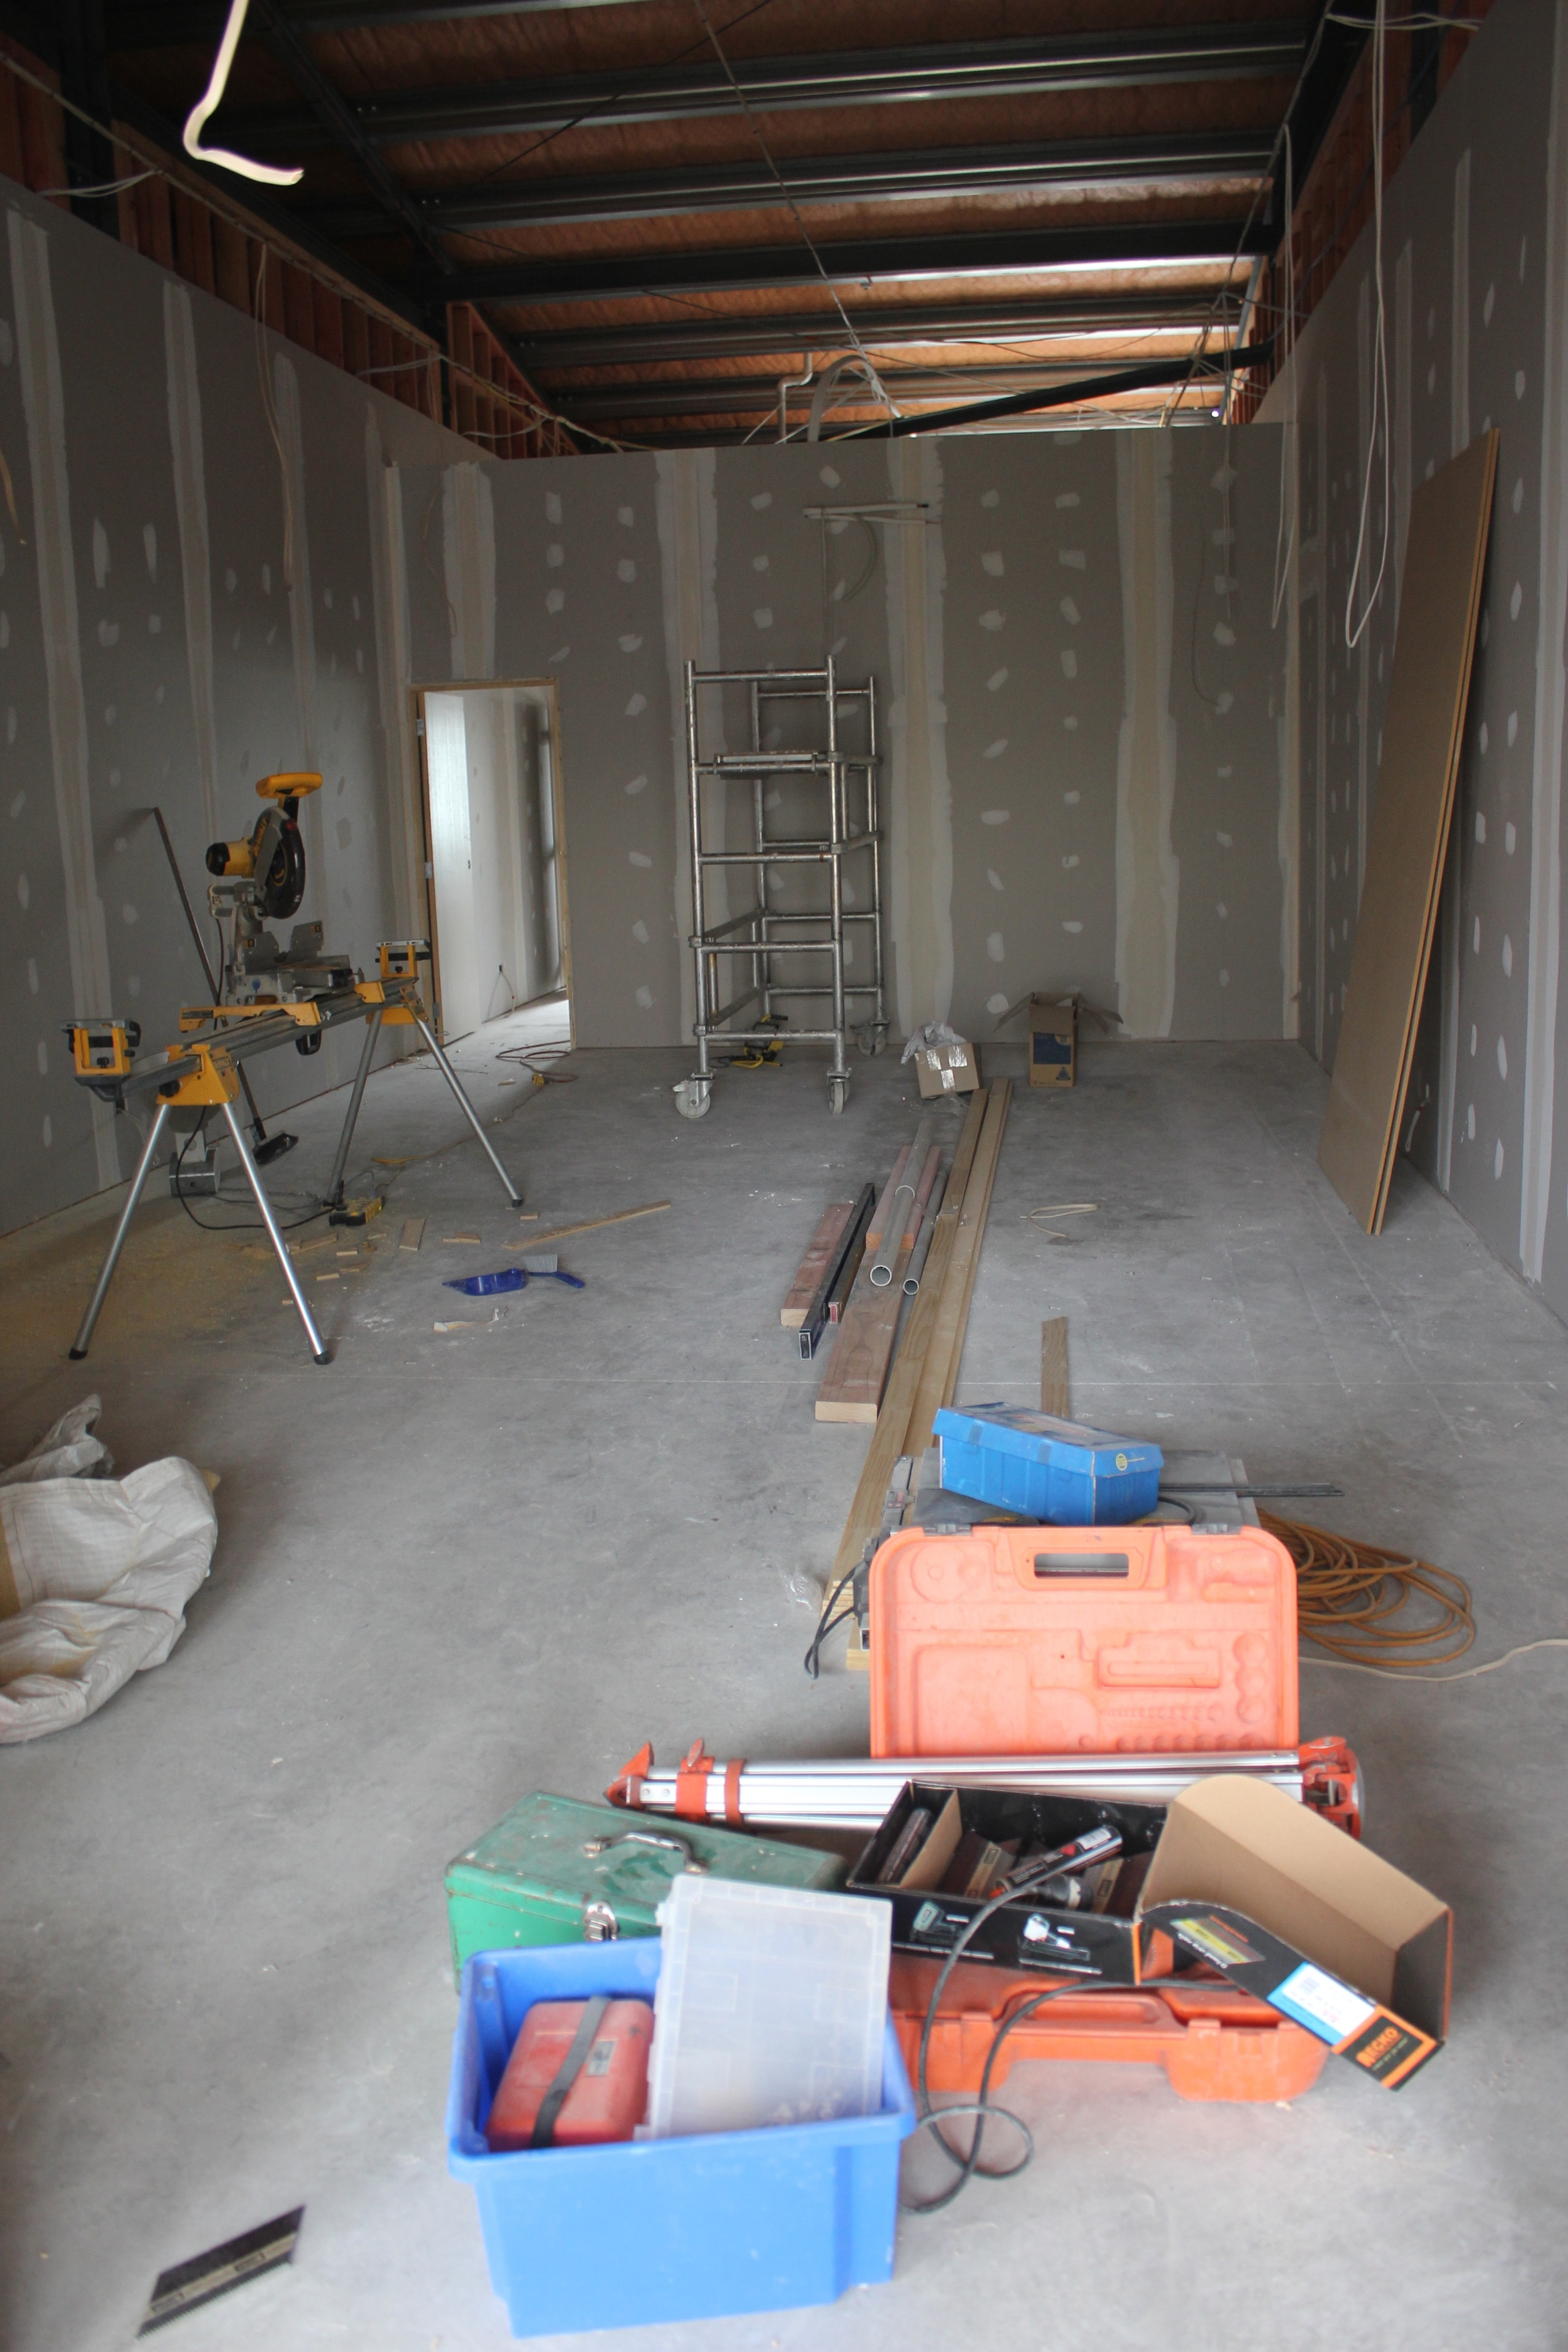 Walls are up and gib-stopping in progress